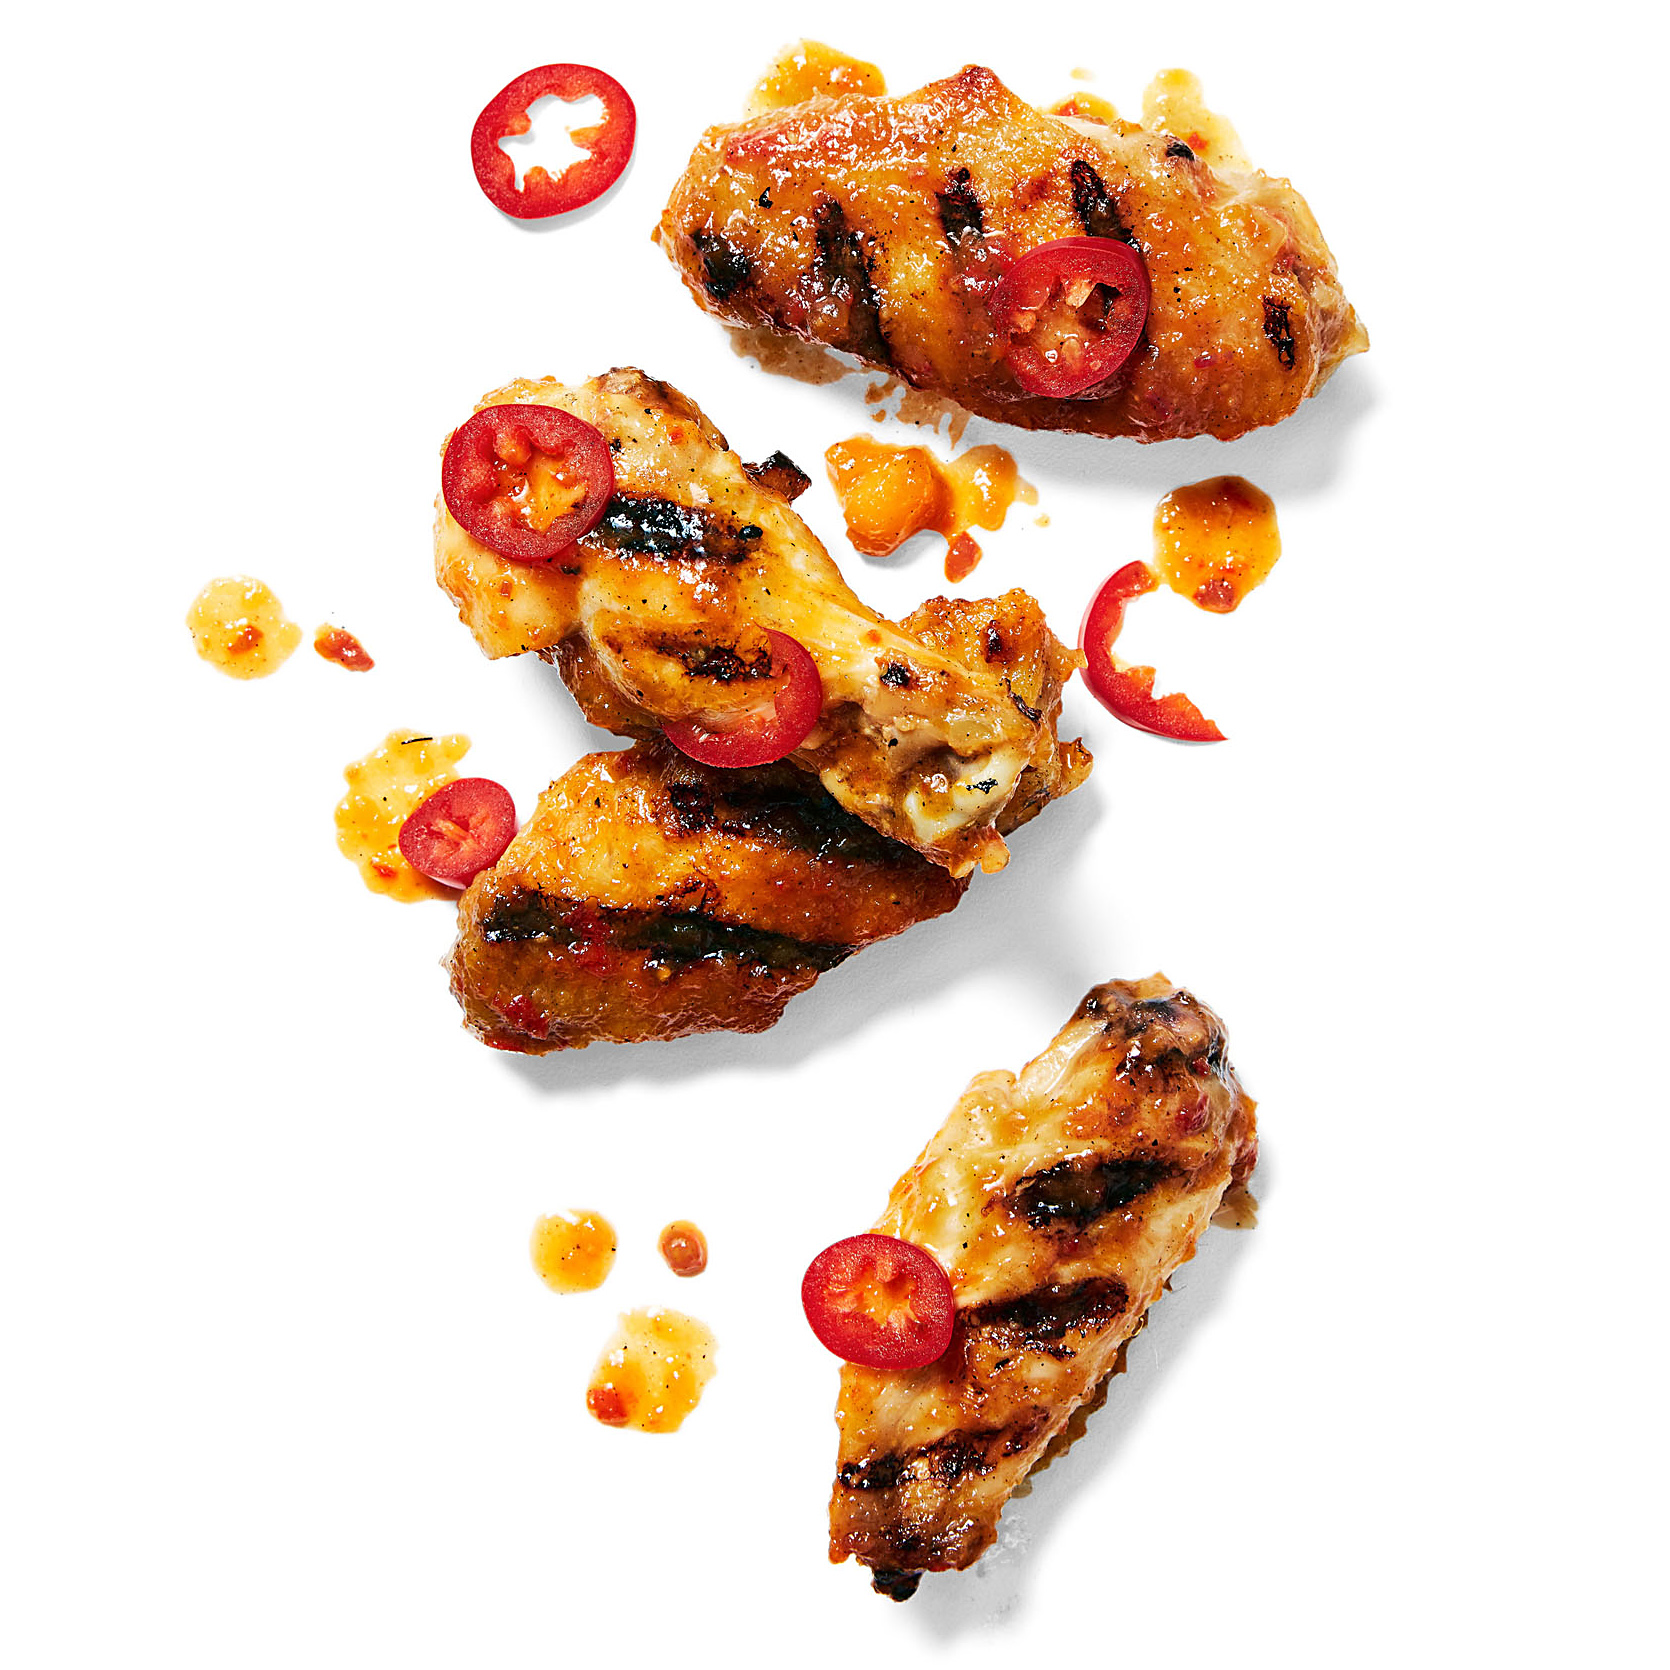 Grilled Soy-Glazed Chicken Wings